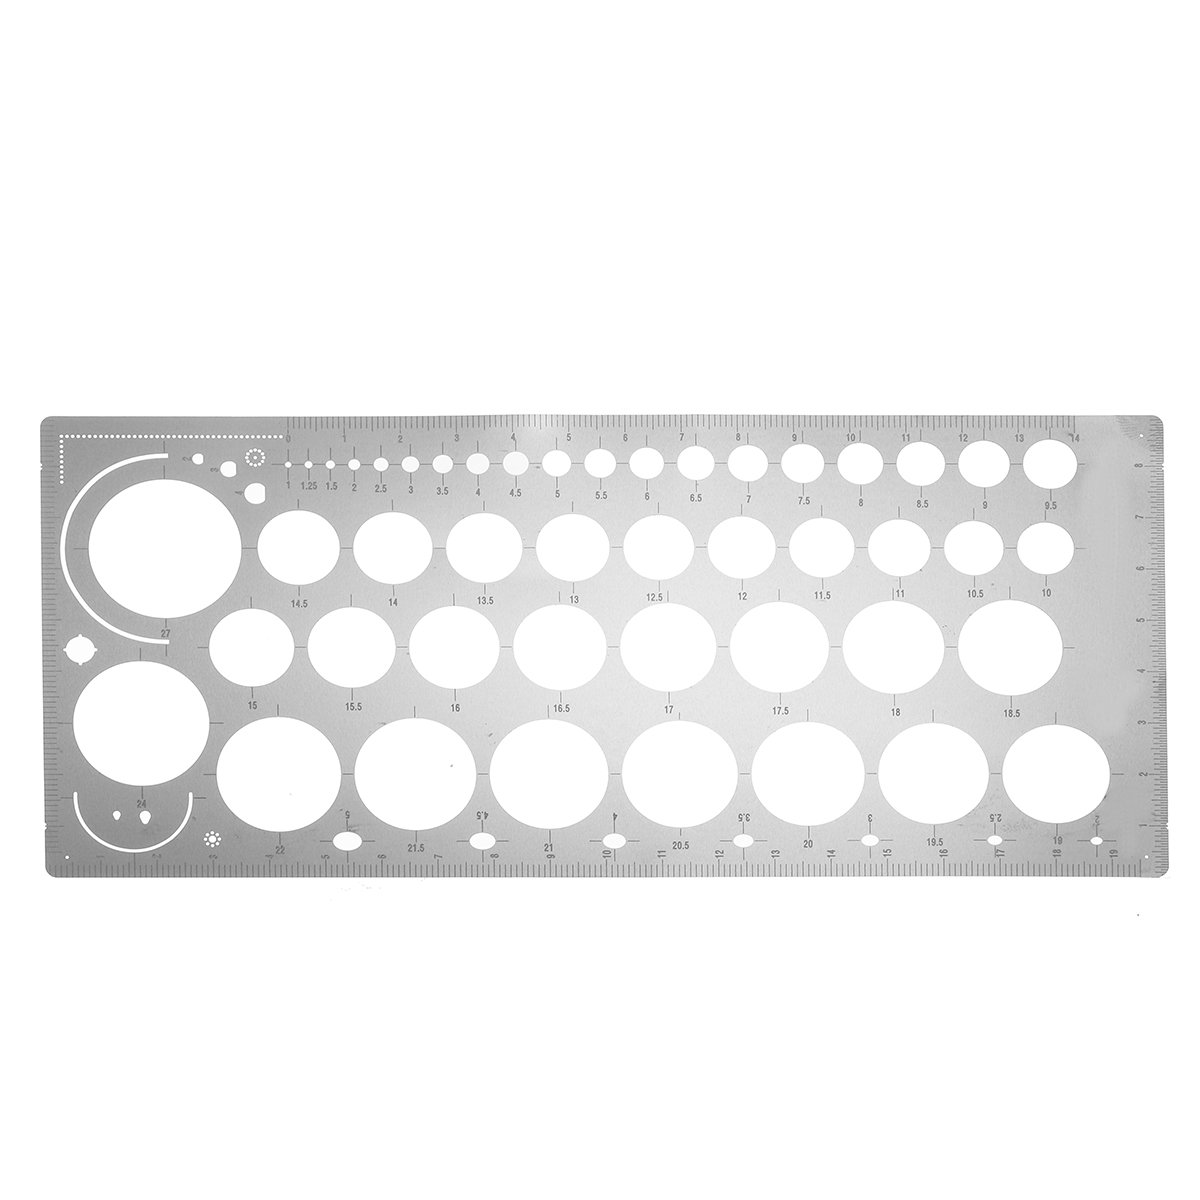 Metal Photo Etched Tool Scribing Panel Modeling Template Engraved Forming Line Board Etched Template Model Craft Tools Supplies